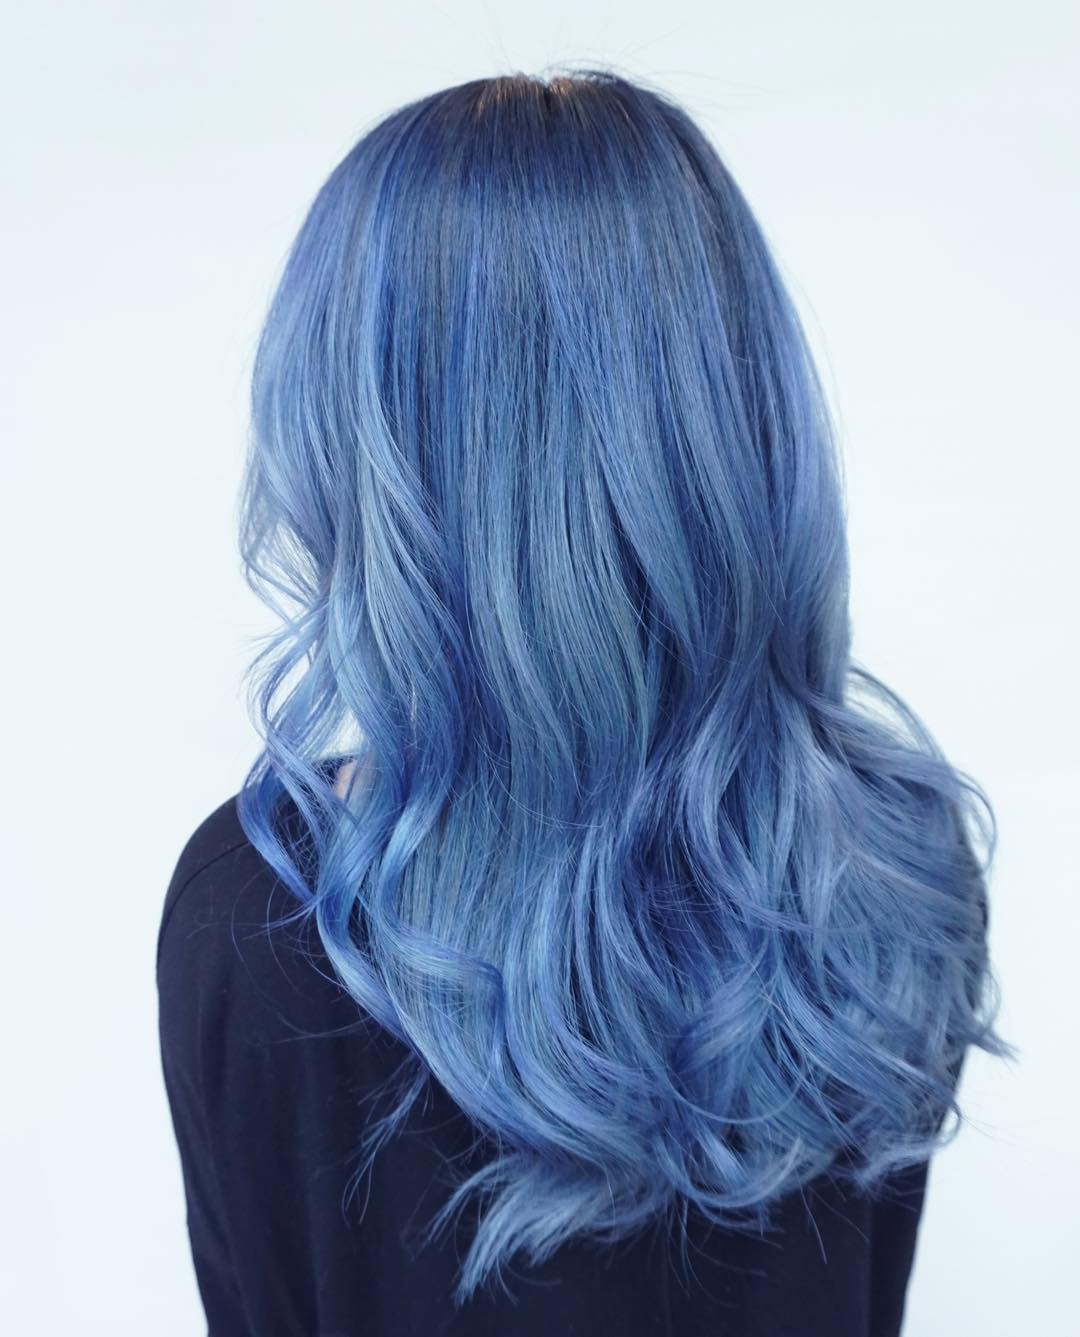 How To Dye Natural Silver Hair Blue